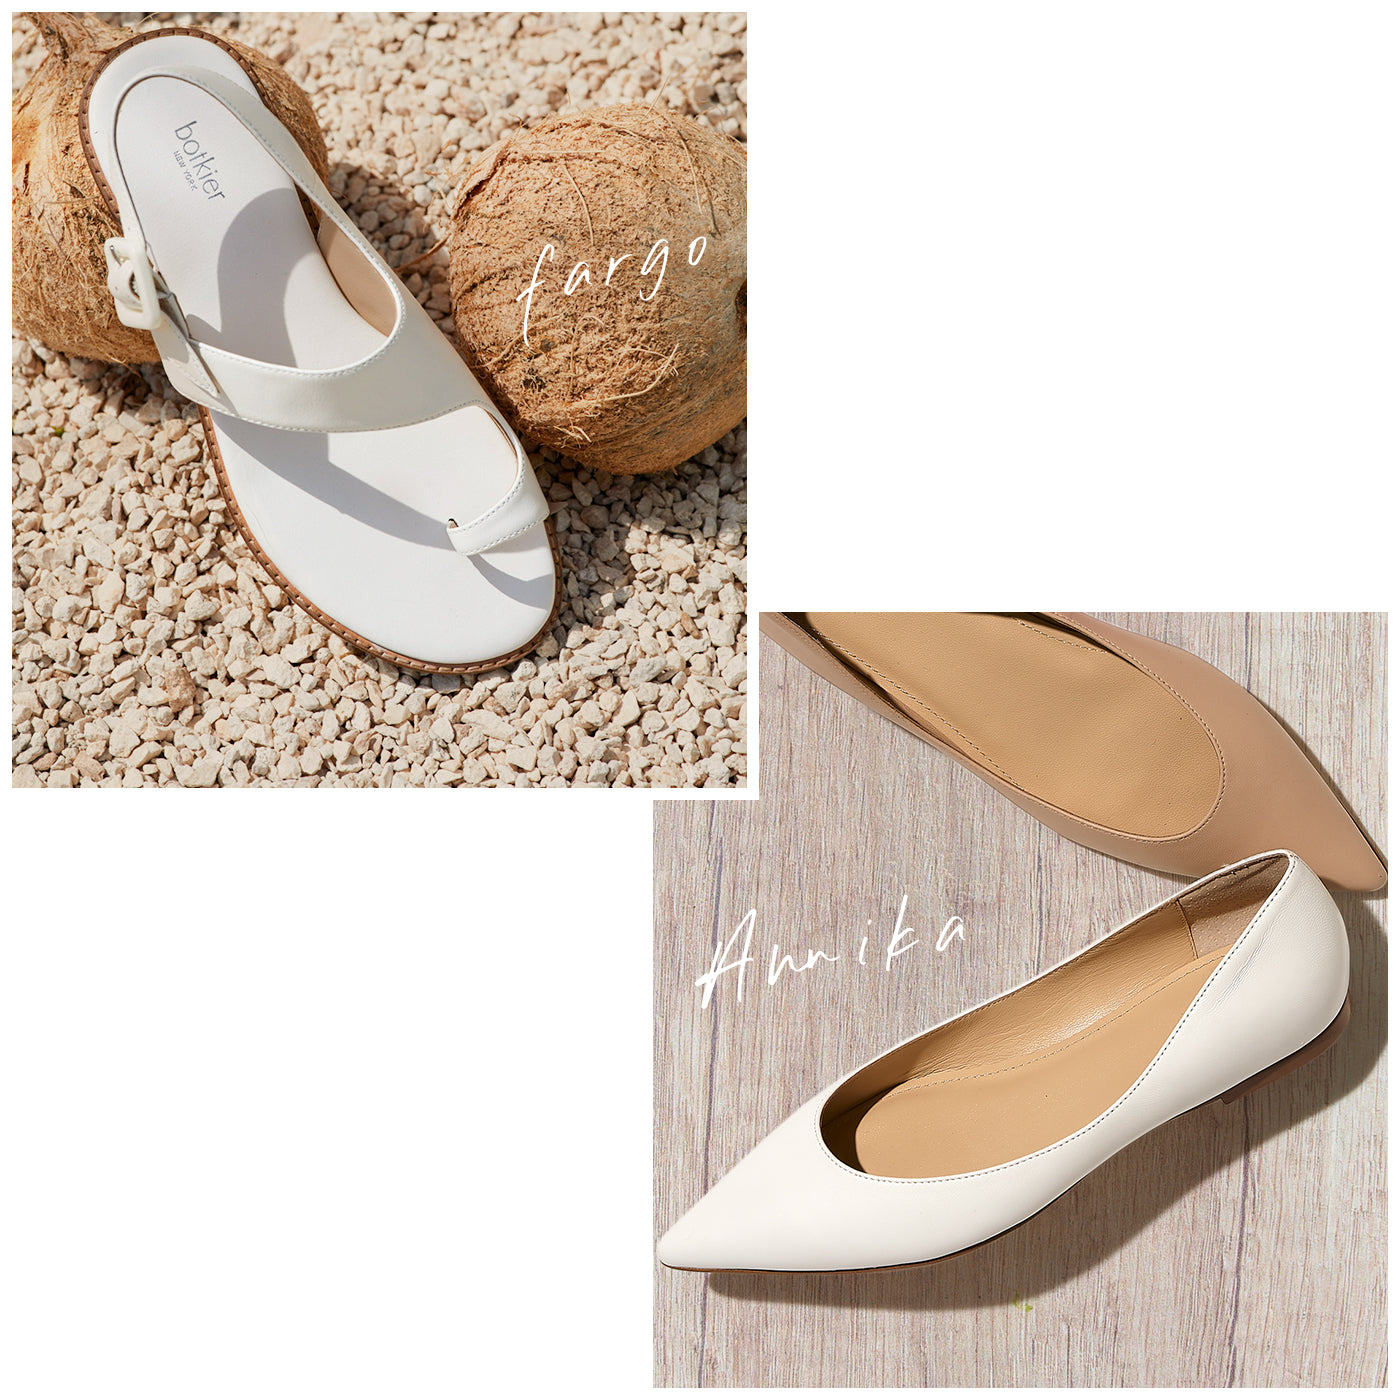 botkier coconut shoes